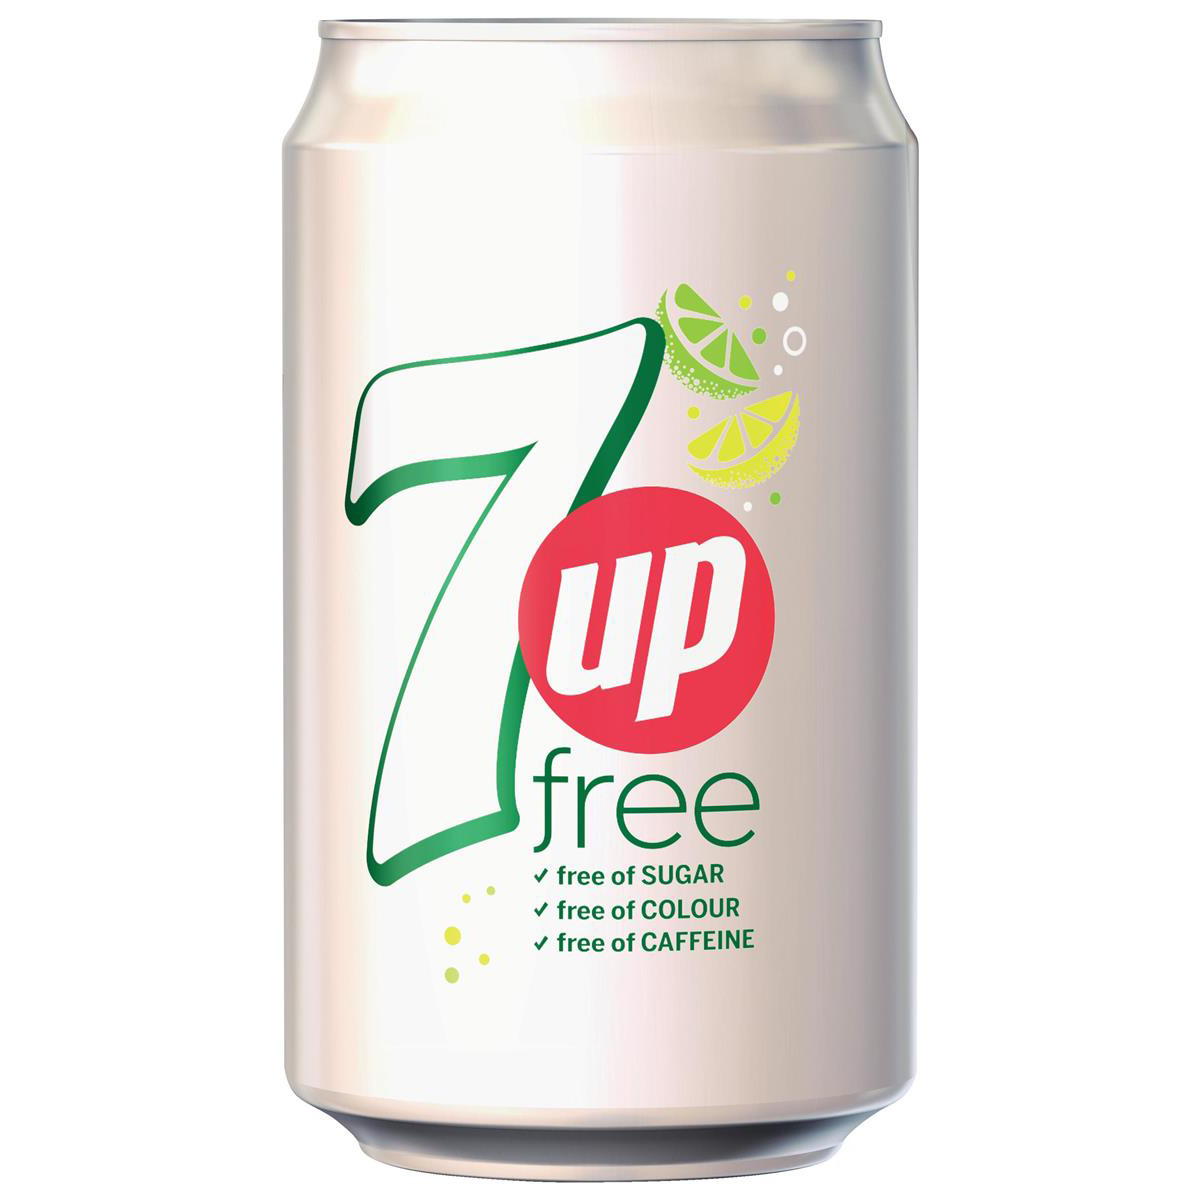 Cold Drinks 7UP Free Lemon and Lime Soft Drink Can 330ml Ref 203389 Pack 24